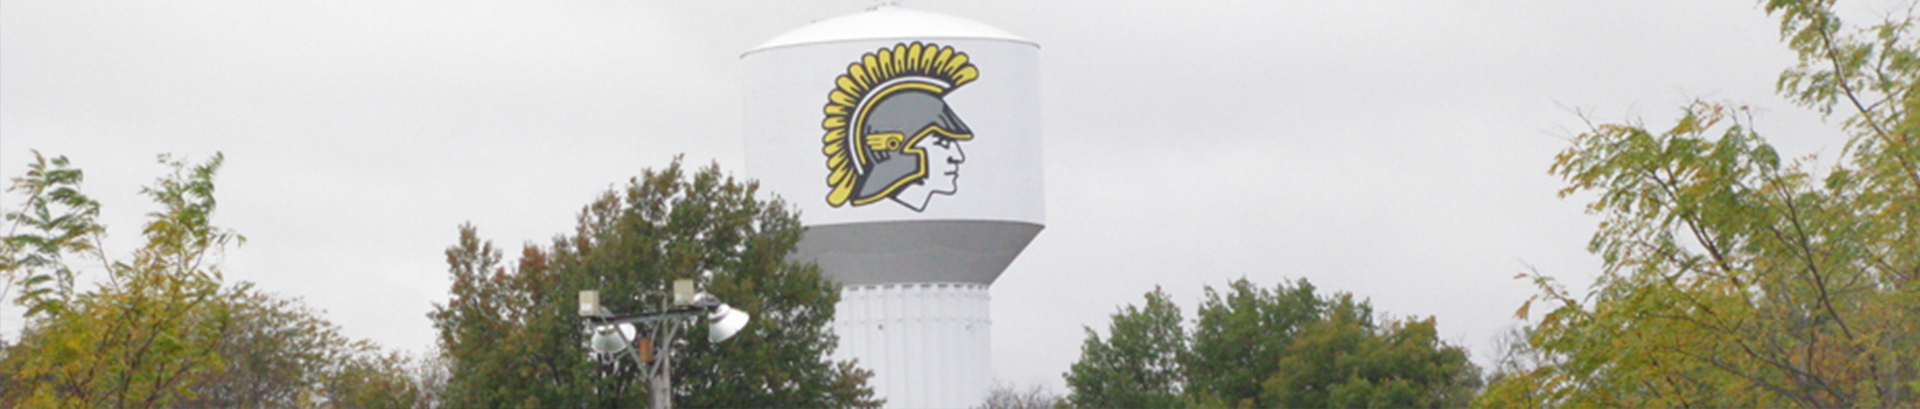 District Banner Water Tower